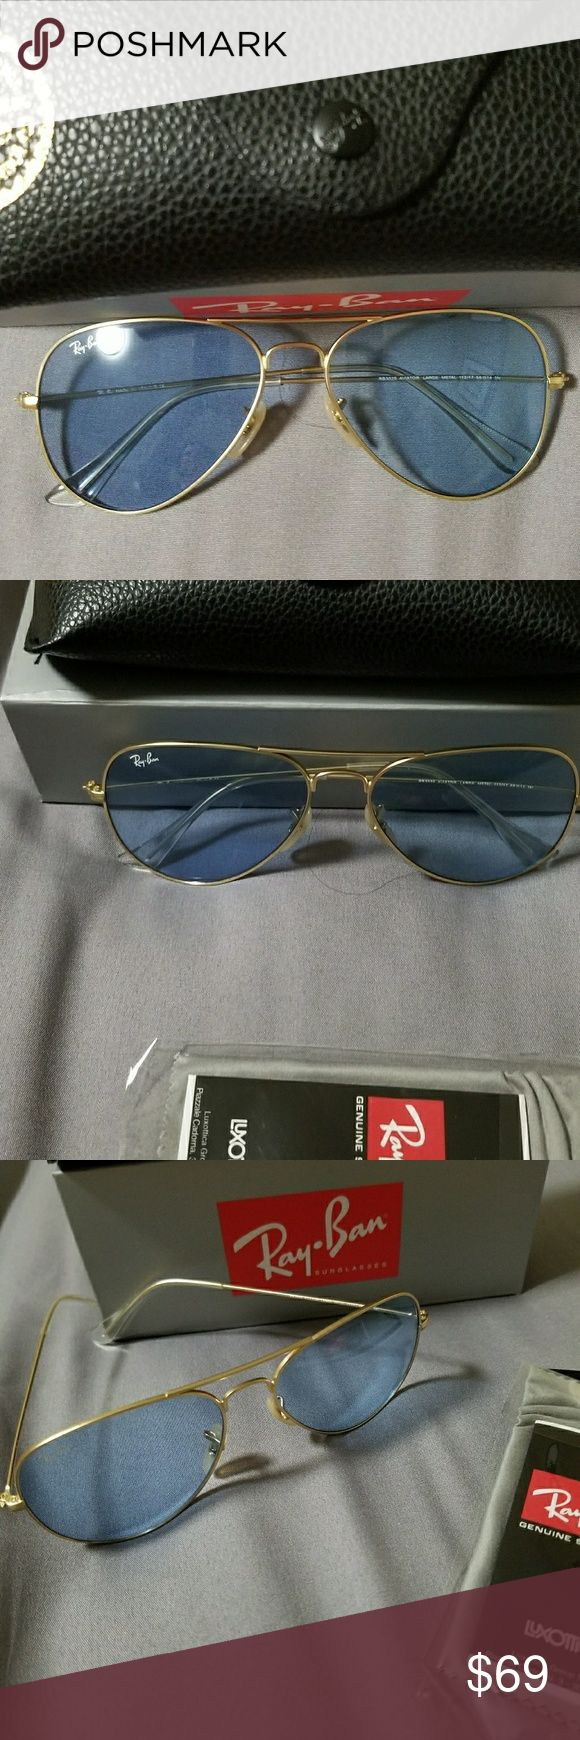 Ray ban aviator  cristal blue 3025 Ray ban aviator cristal blue Rb 3025 Frame cold Made in Irak y Size 58mm Brand new with Box and cleaning  cloth Ray-Ban Accessories Sunglasses